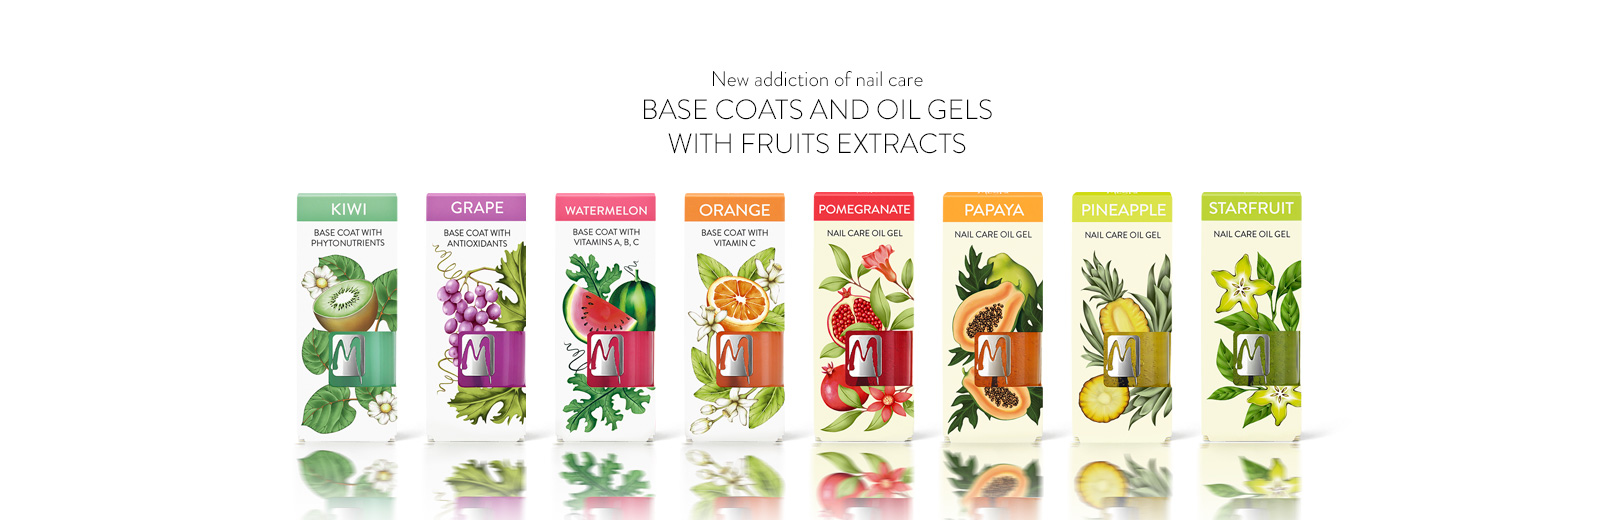 Moyra Base coats and oil gels with fruits extracts